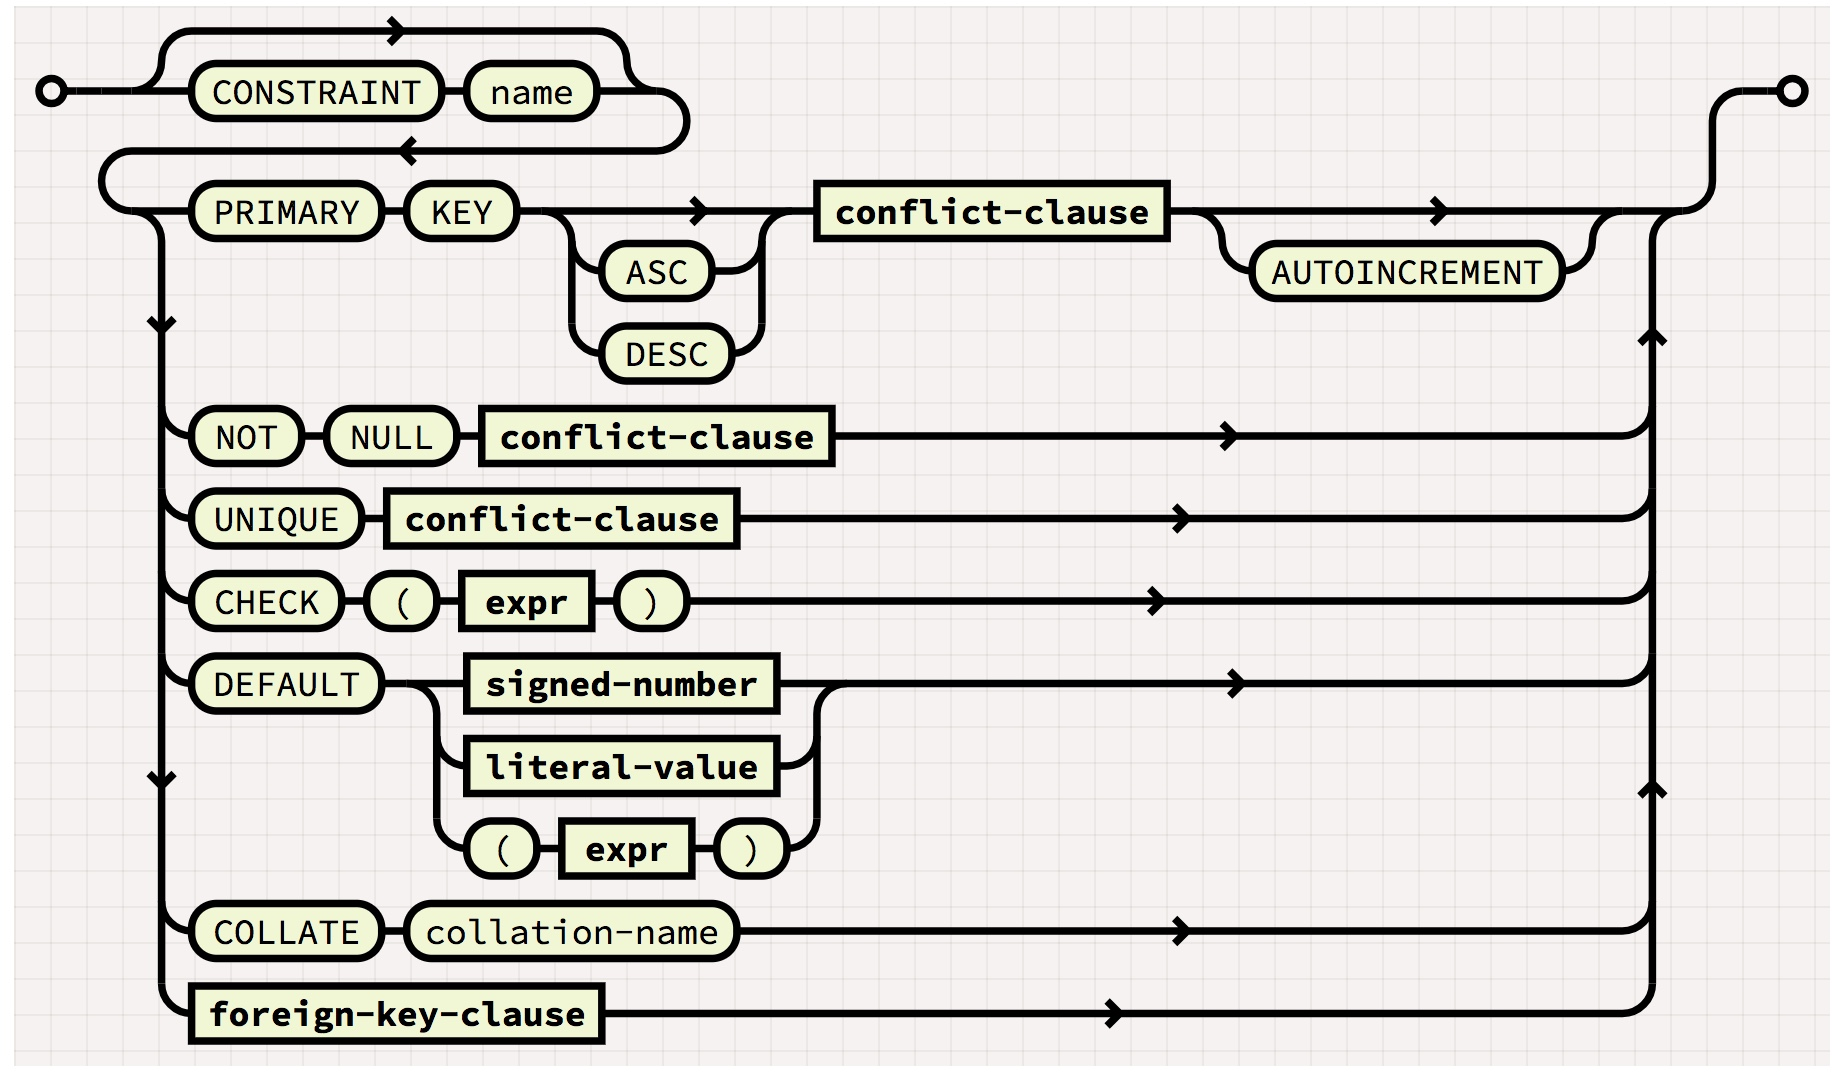 diagram for constraint syntax